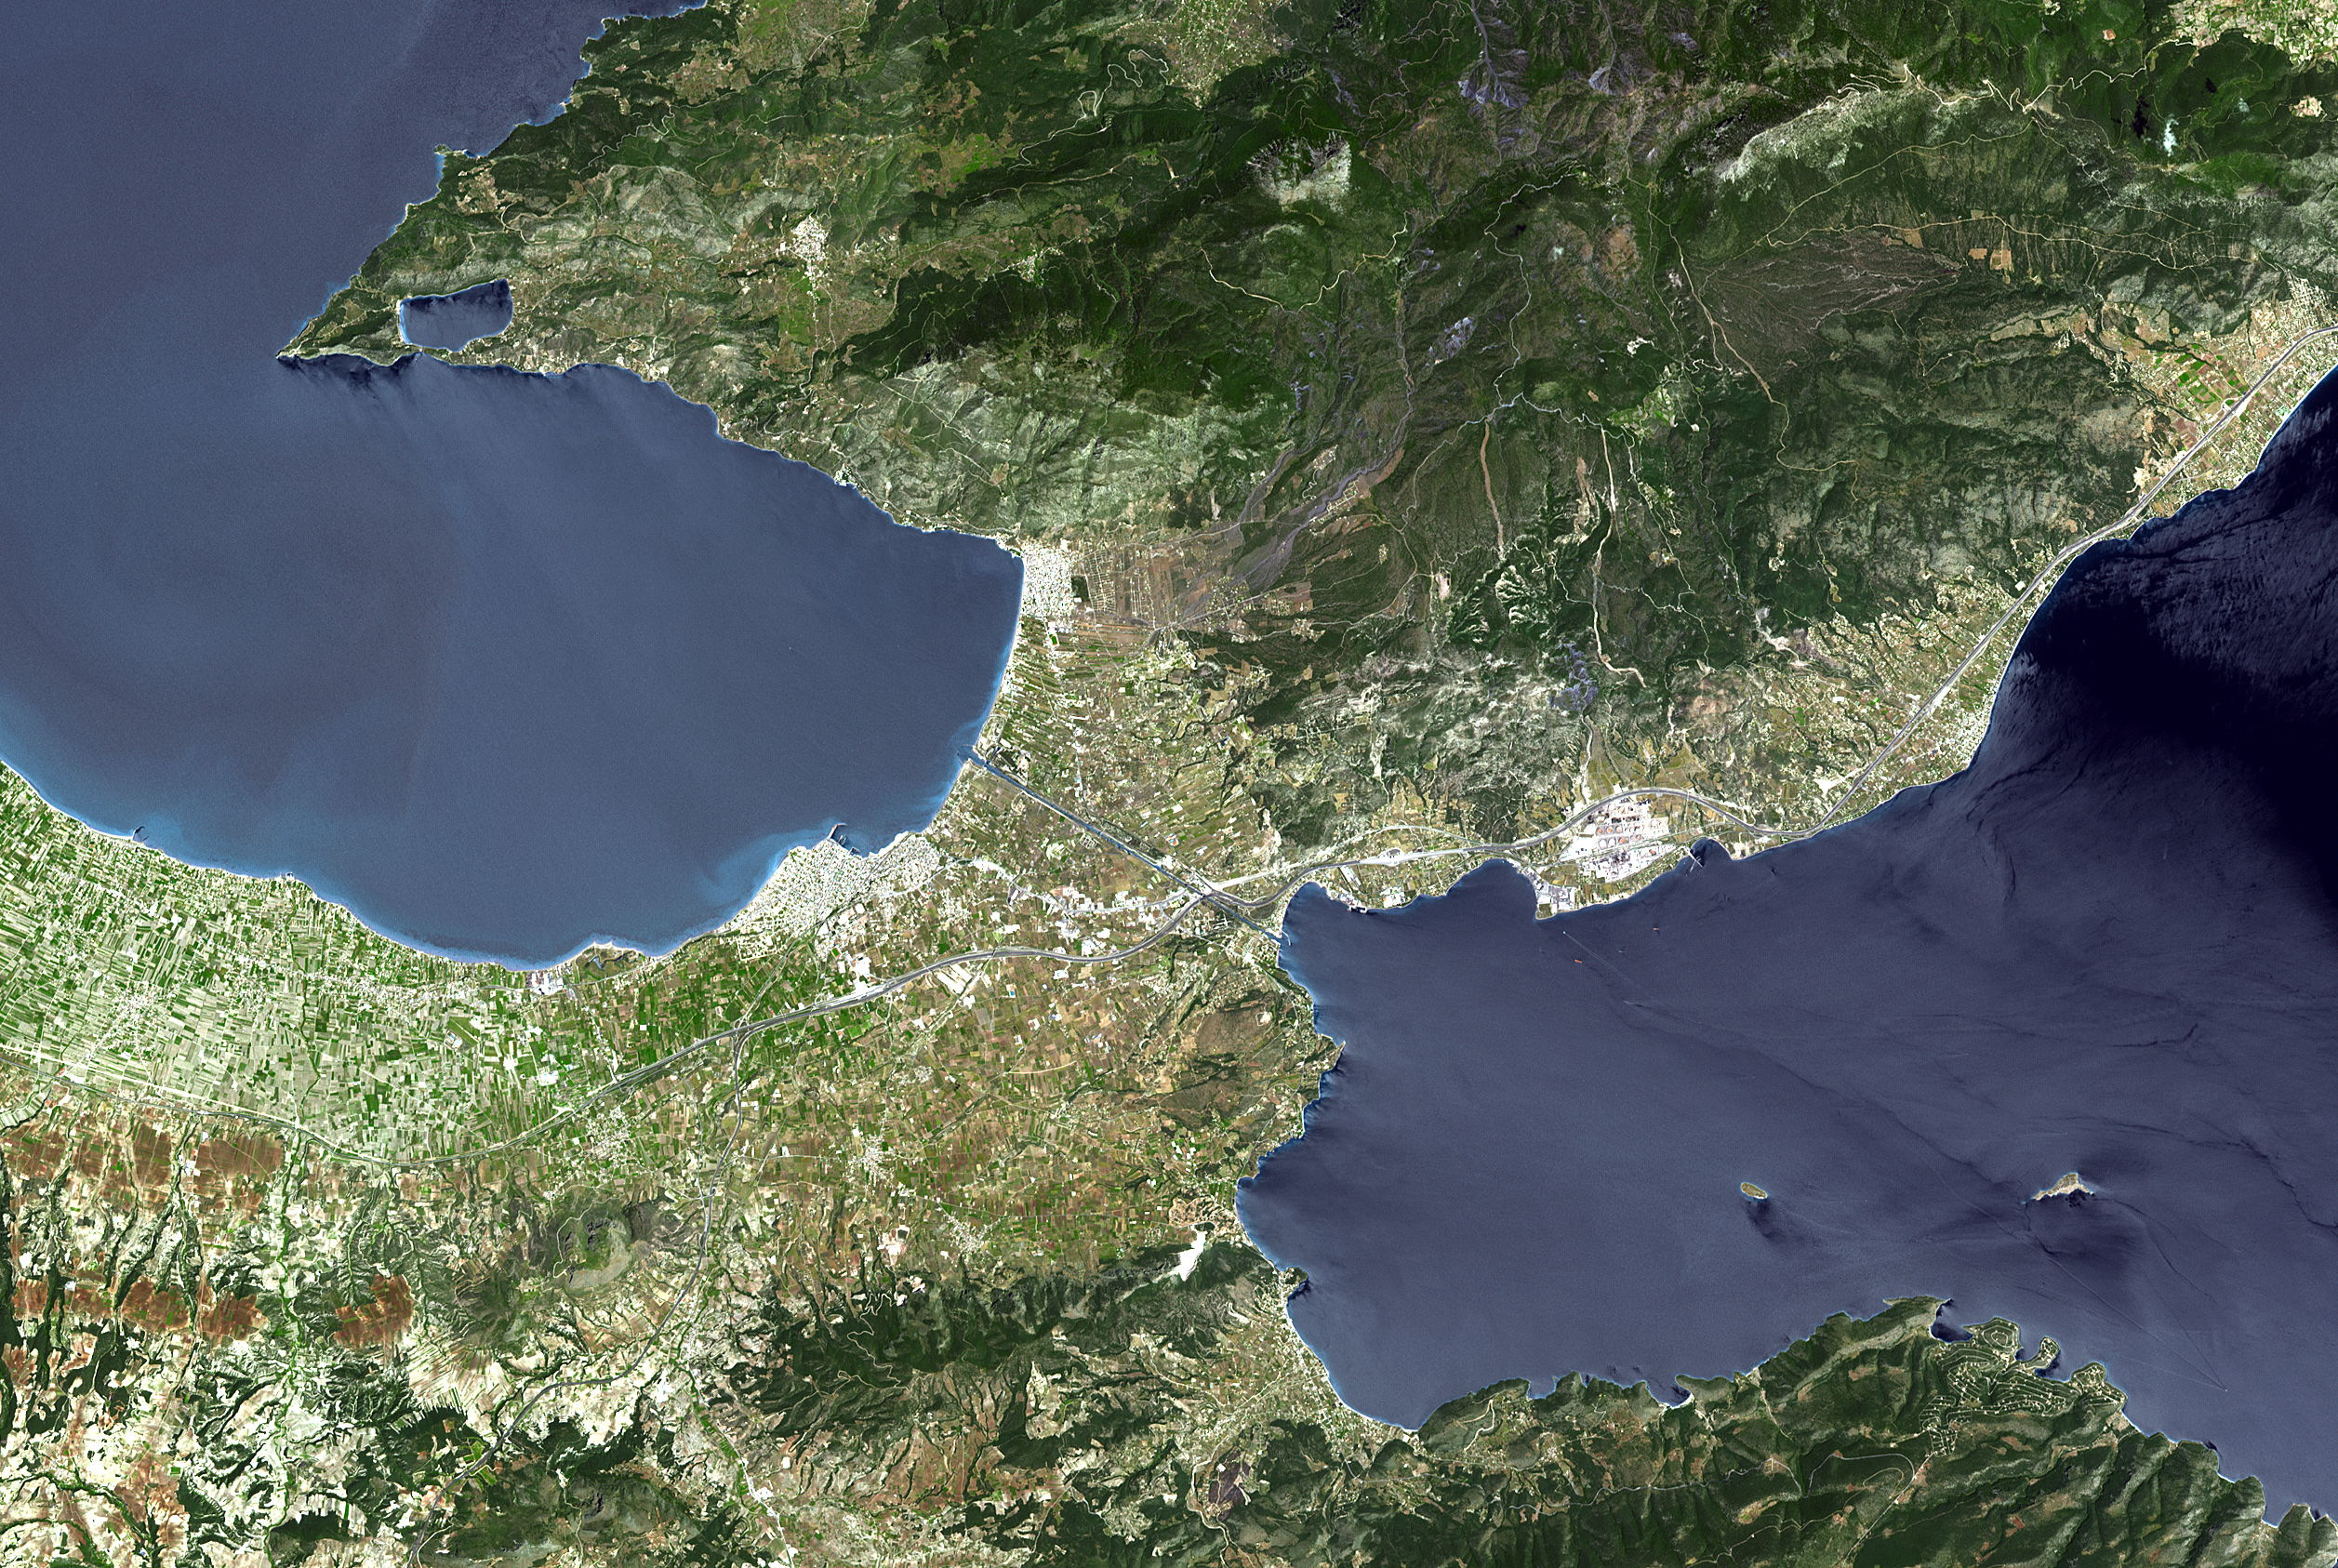 Corinth%2C_Greece_%28NASA%29.jpg